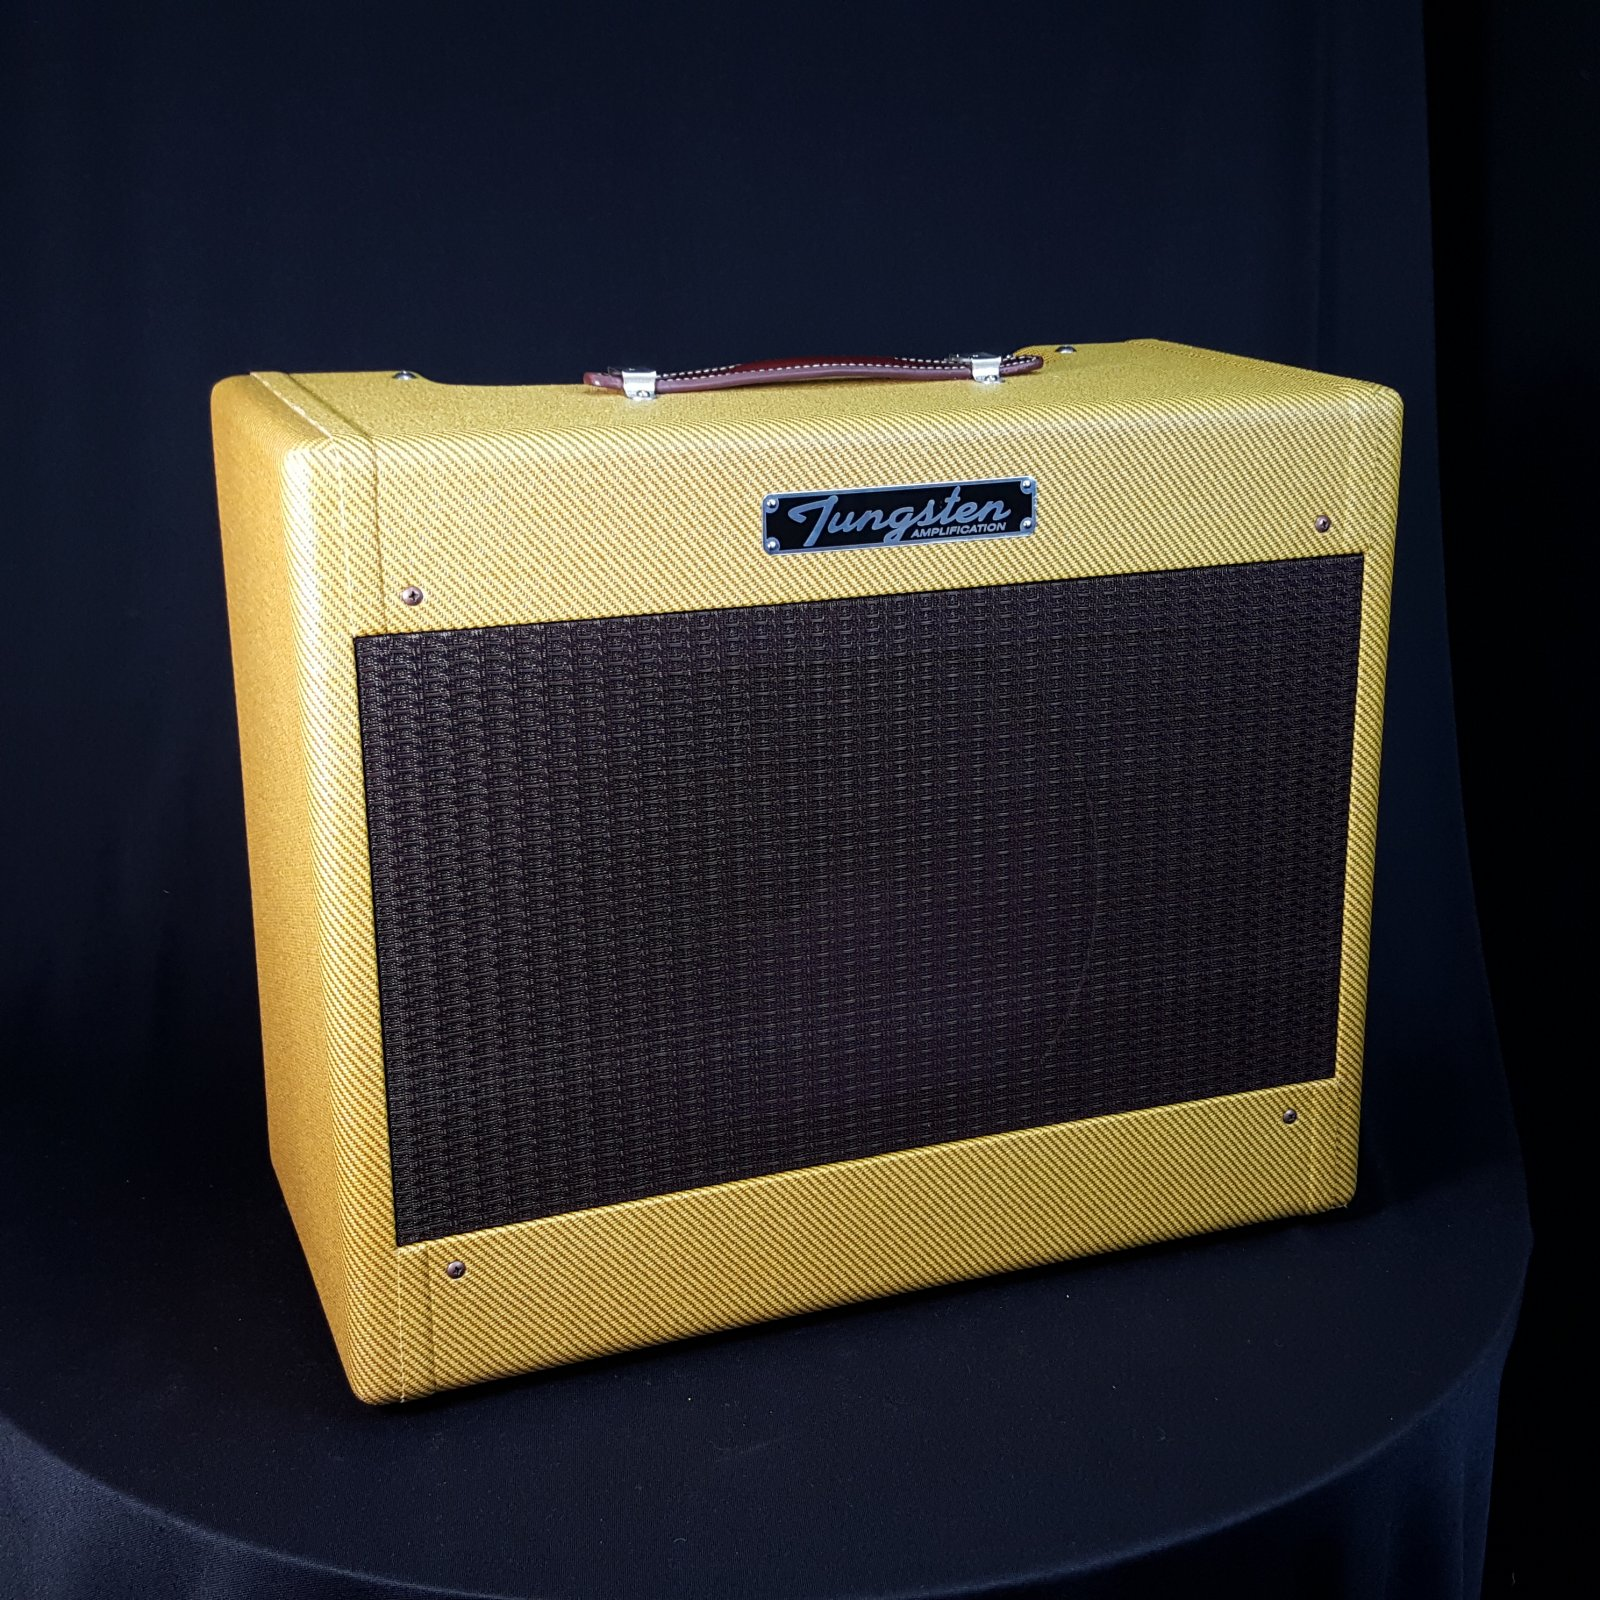 USED Tungsten Cortez 5D3 Electric Guitar Amp Amplifier Tube Combo